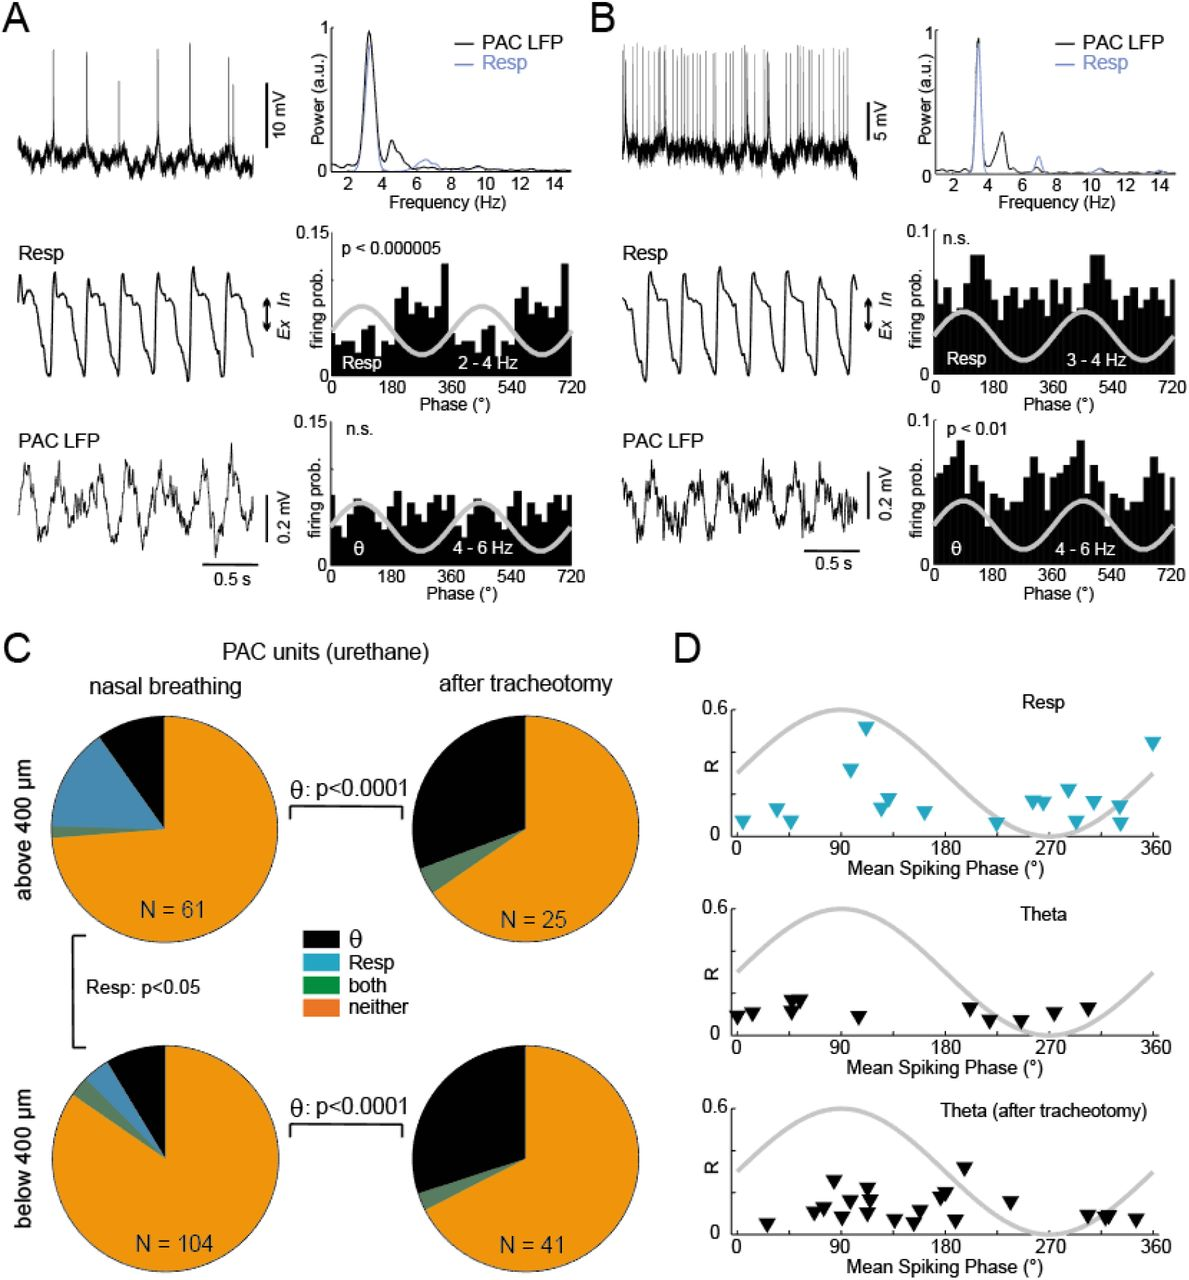 Respiration competes with theta for modulating parietal